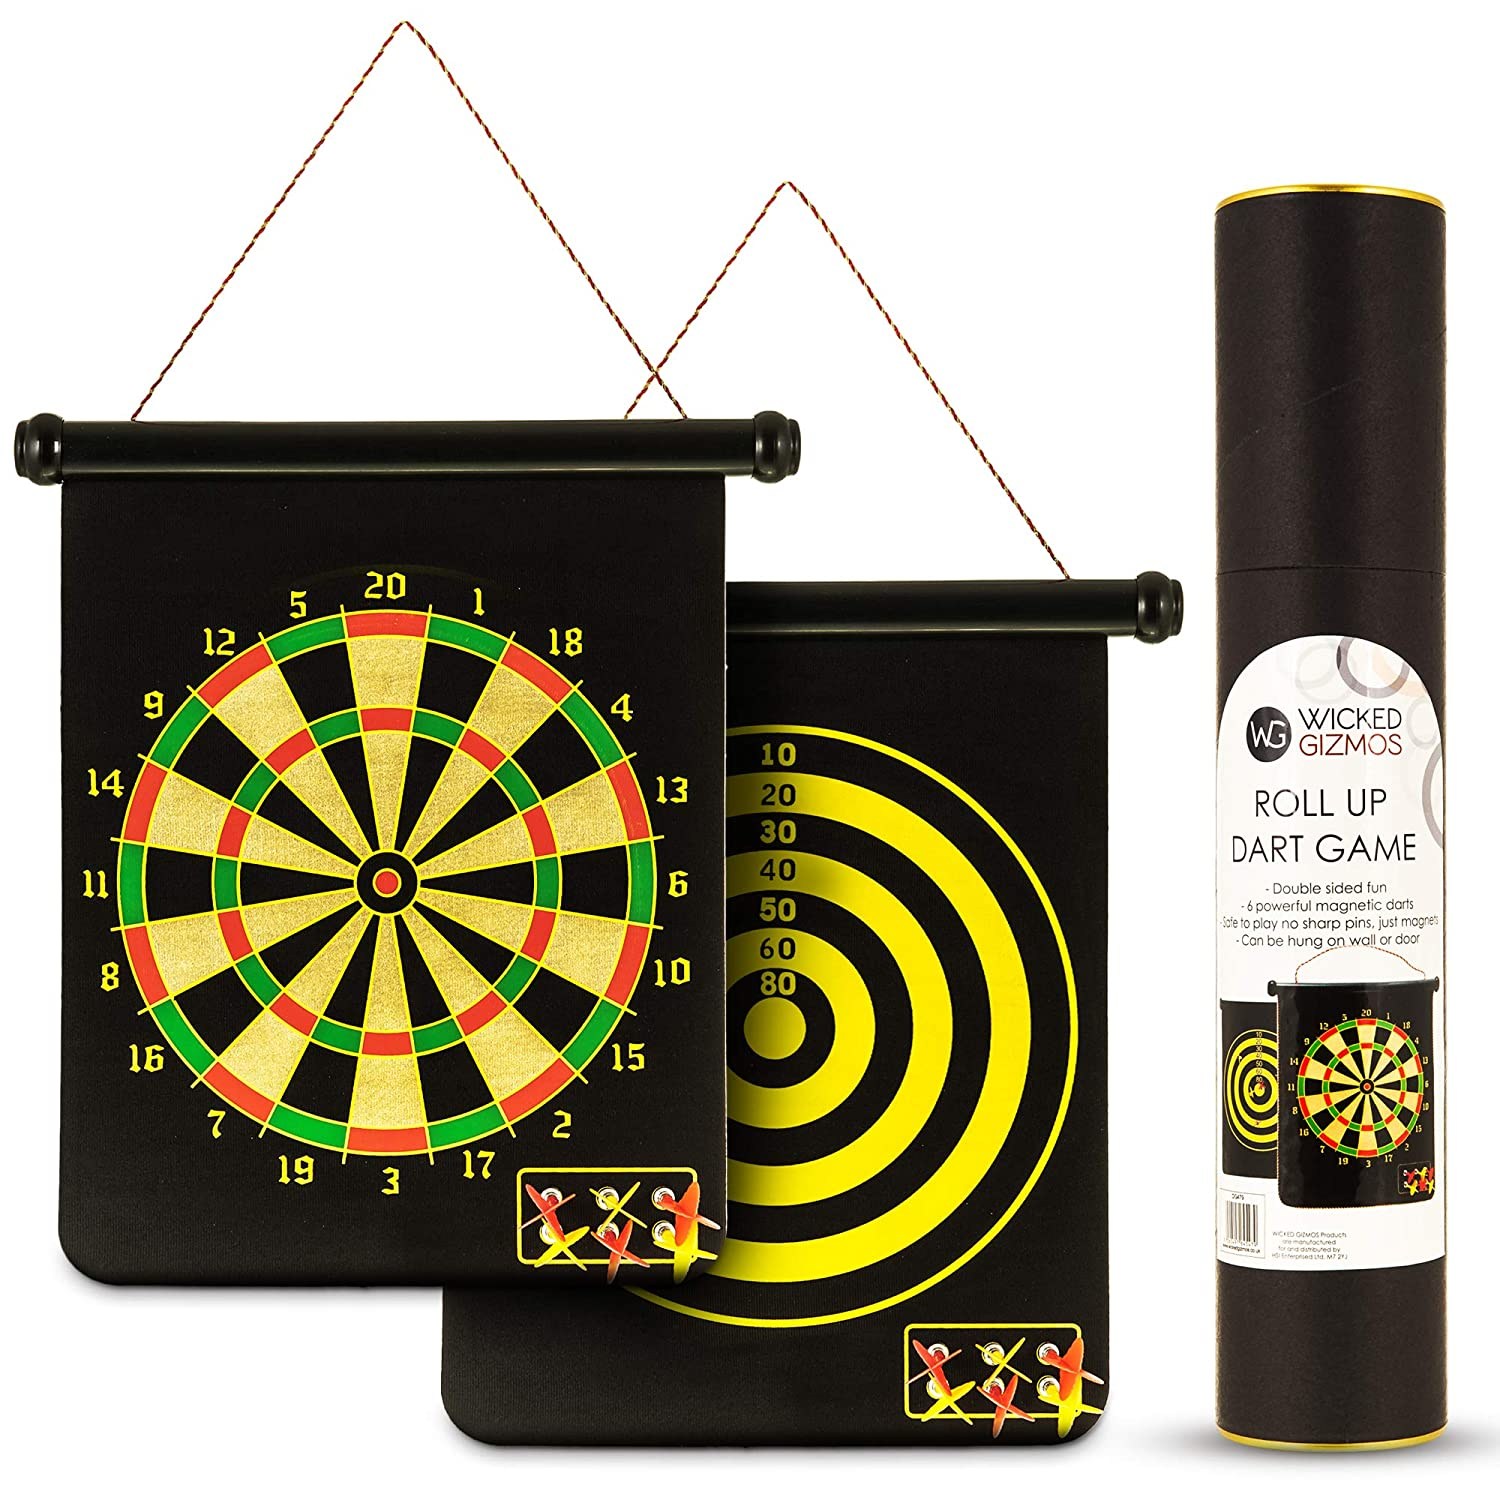 Wicked Gizmos Roll Up Dart Game Extra Large Double Sided